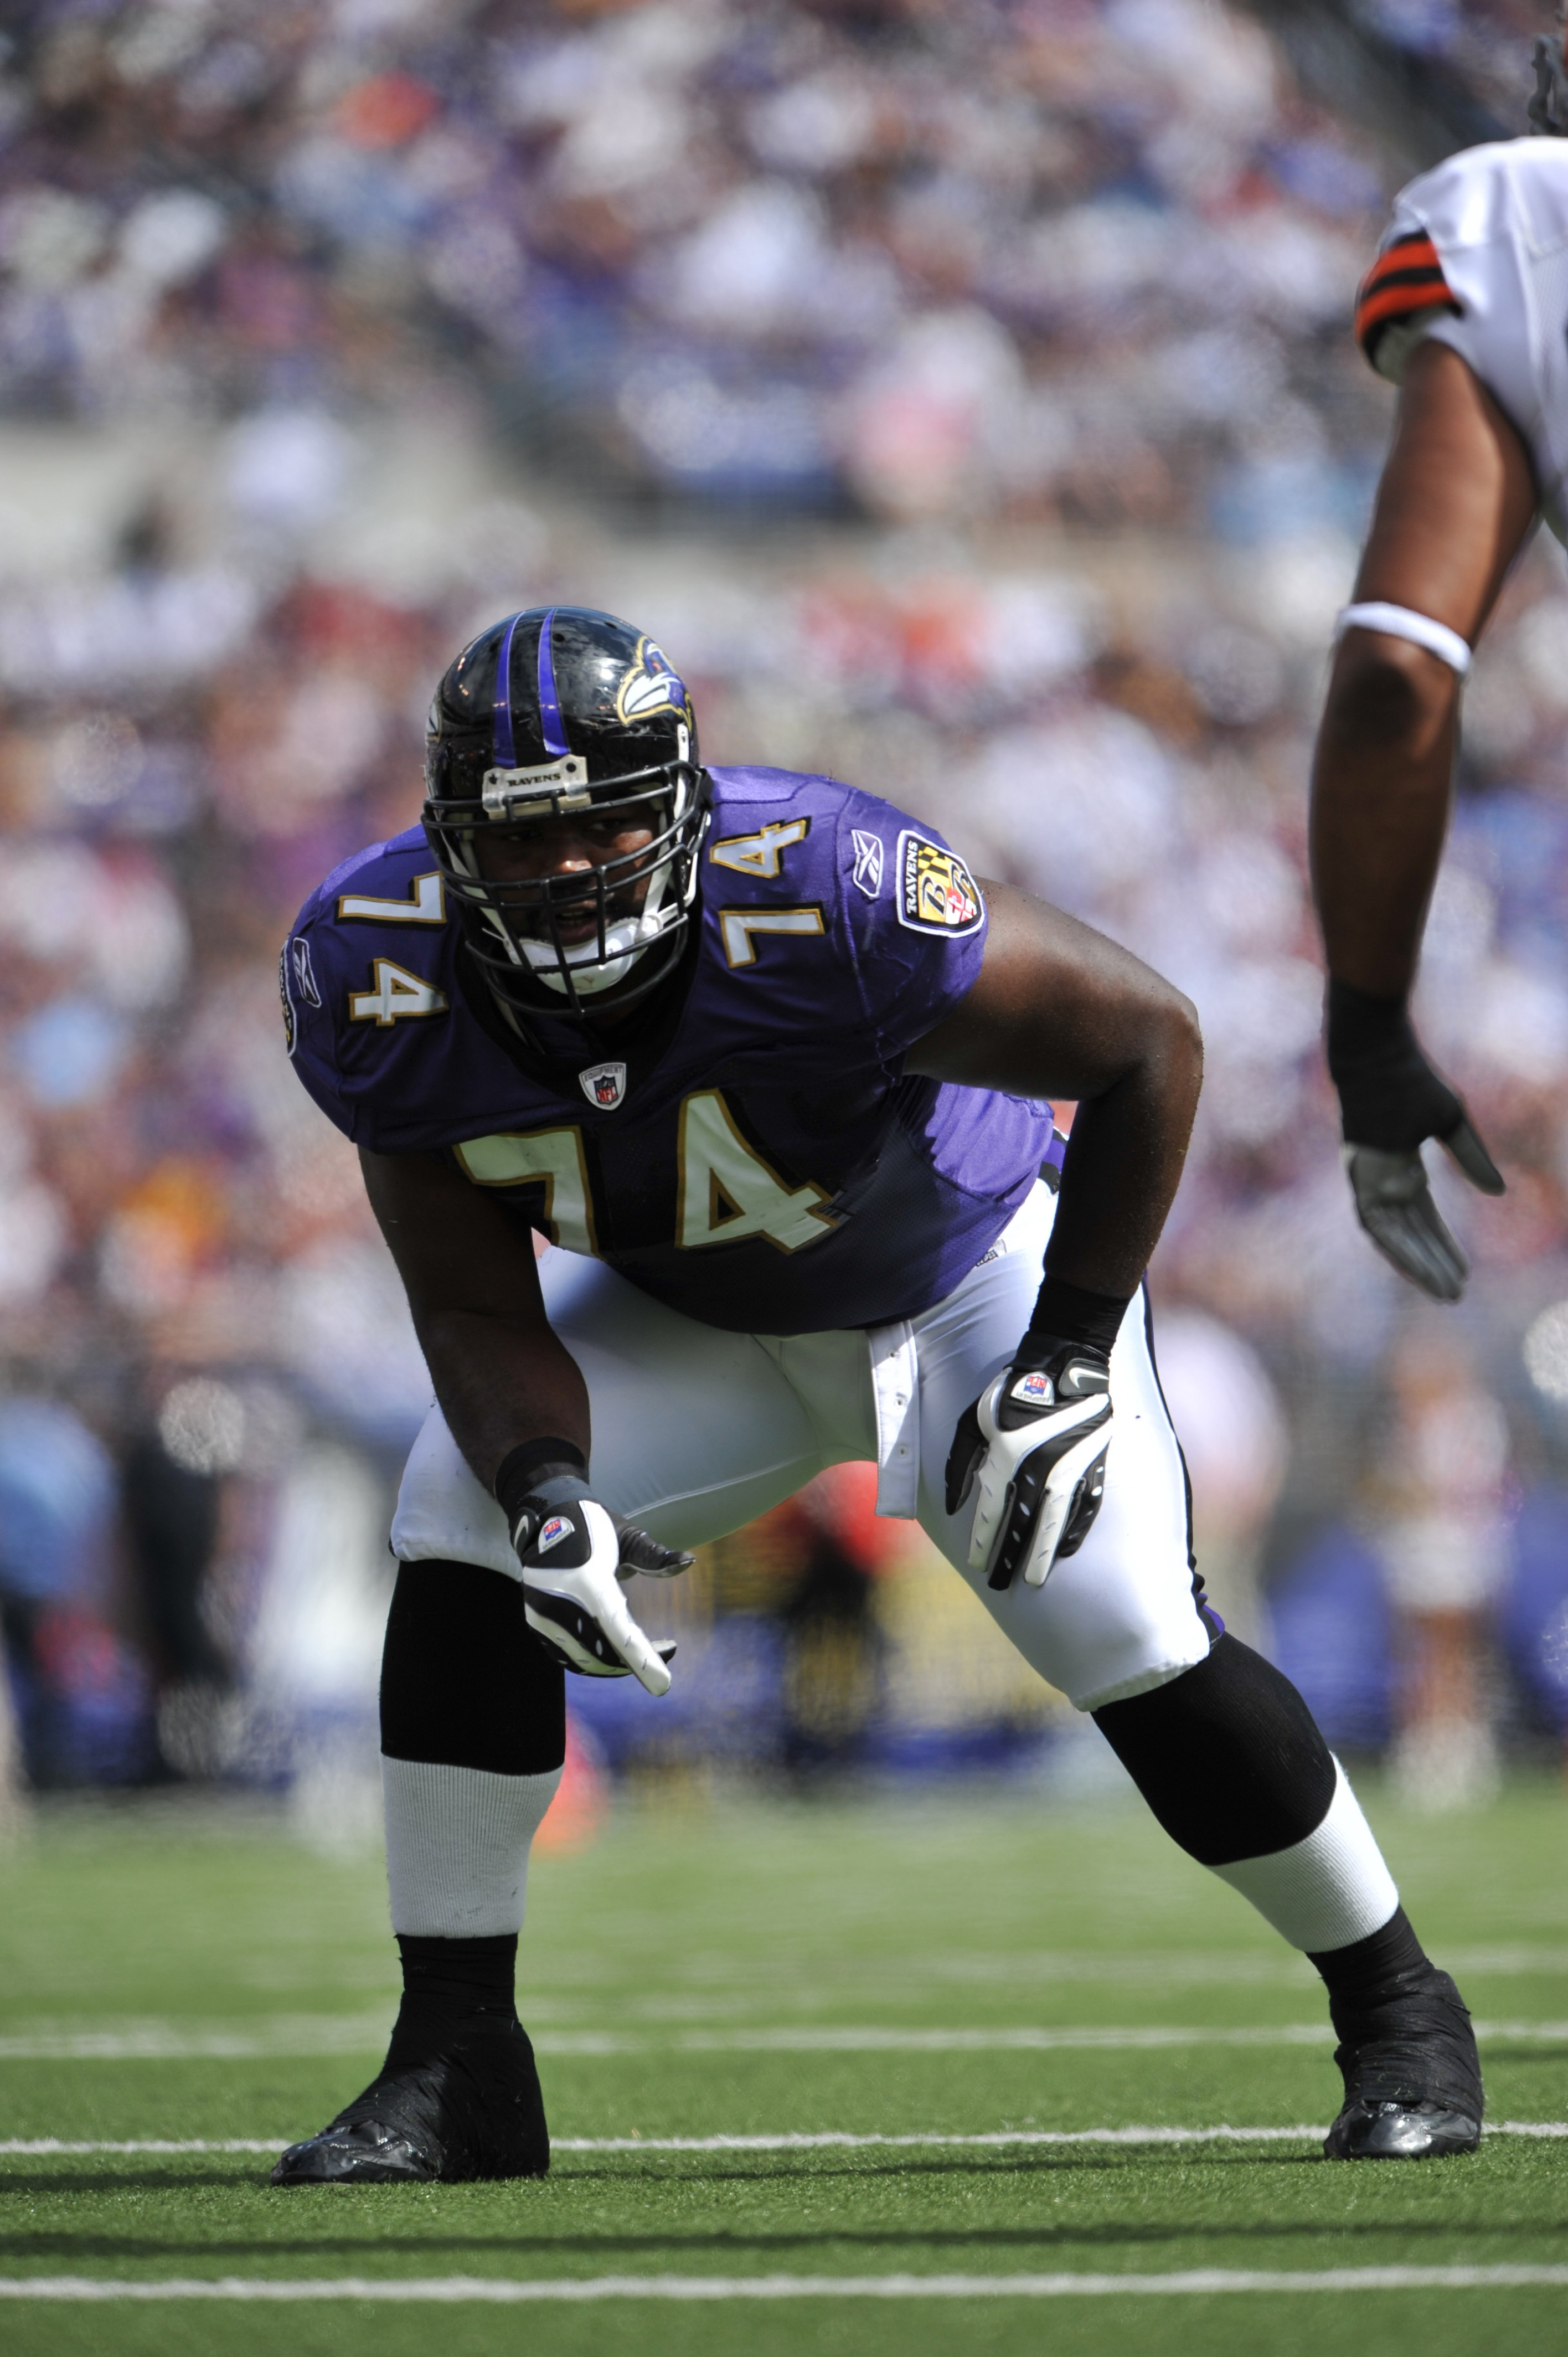 BALTIMORE - SEPTEMBER 27:  Michael Oher #74 of the Baltimore Ravens defends against the Cleveland Browns at M&T Bank Stadium on September 27, 2009 in Baltimore, Maryland. The Ravens defeated the Browns 34-3. (Photo by Larry French/Getty Images)